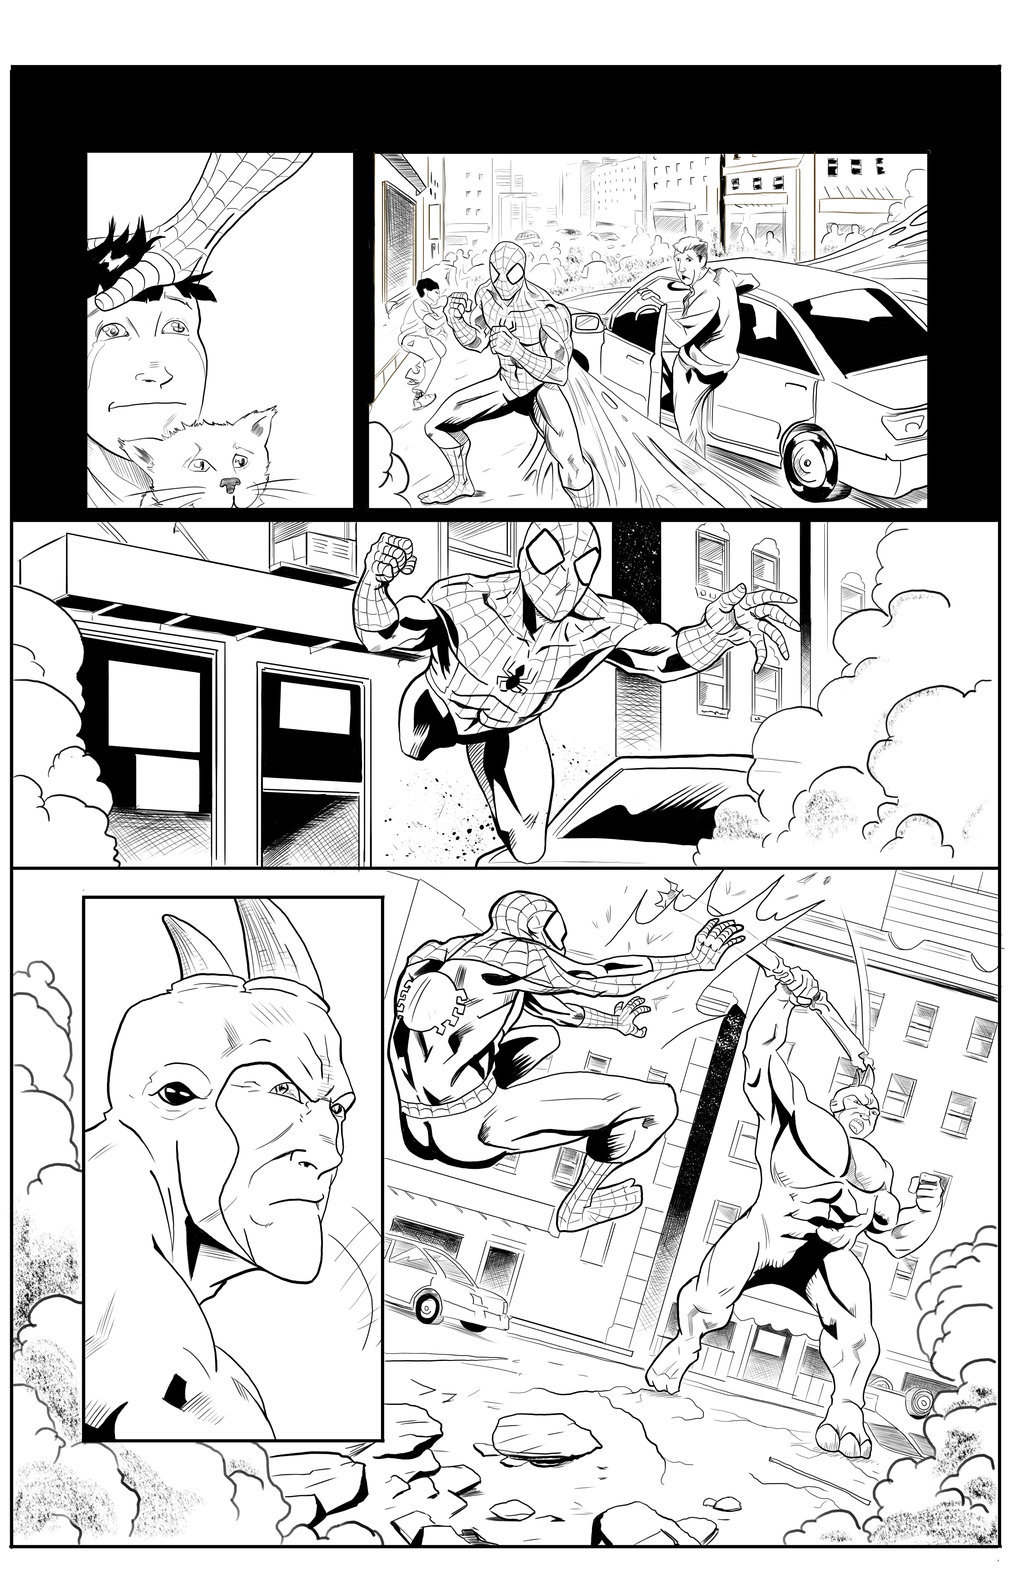 Matt james spider man sample page 5 by mattjamescomicarts d7hb5ji